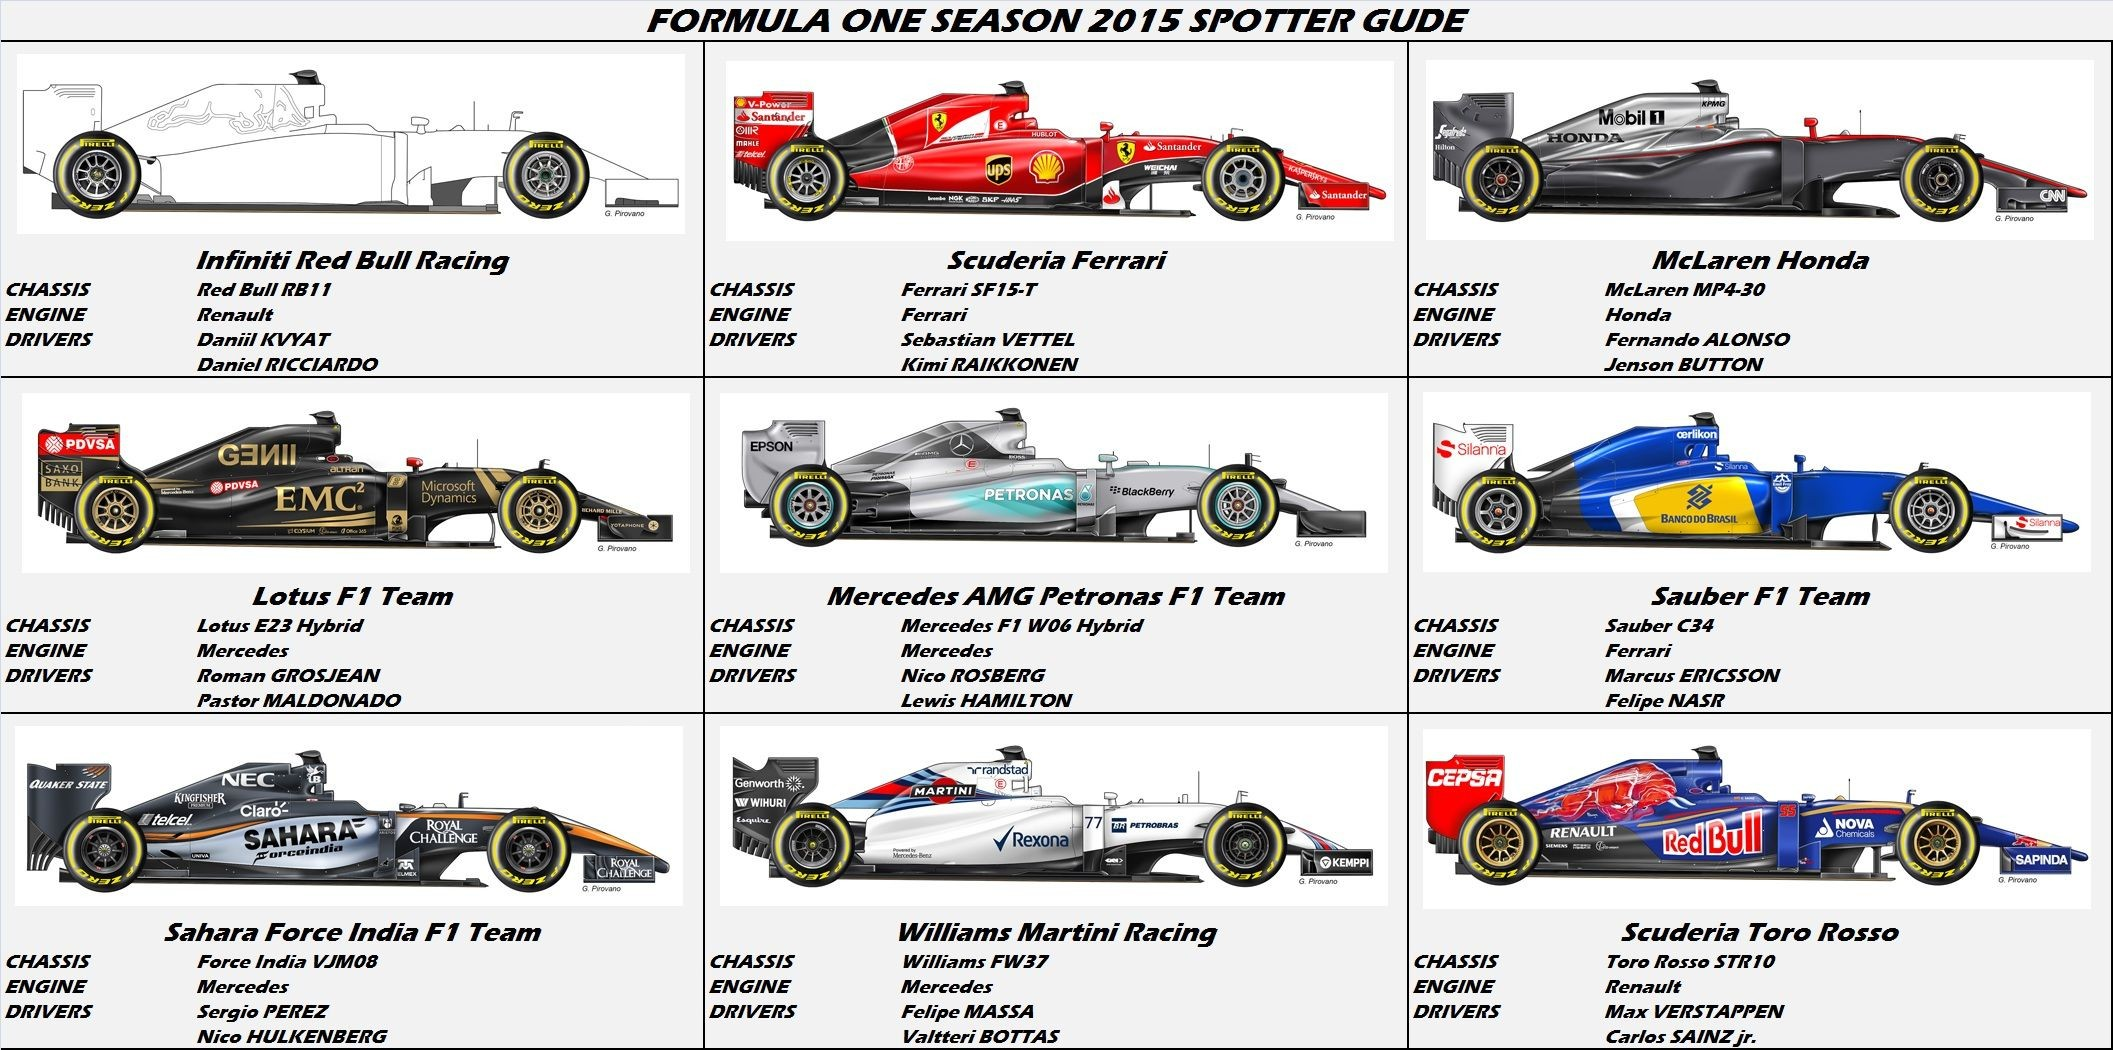 F1 Car Diagram F1 2015 Spotter Guide Art by G Pirovano From Repubblica Of F1 Car Diagram